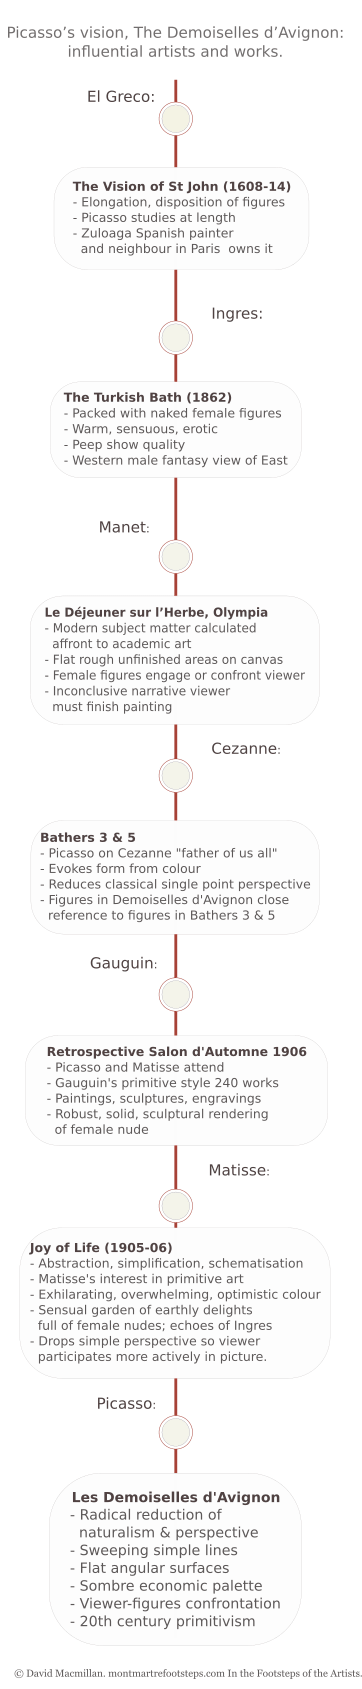 A vertical infographic timeline giving text details of the major artists and artistic movements leading up to and including Picasso's Demoiselles d'Avignon.